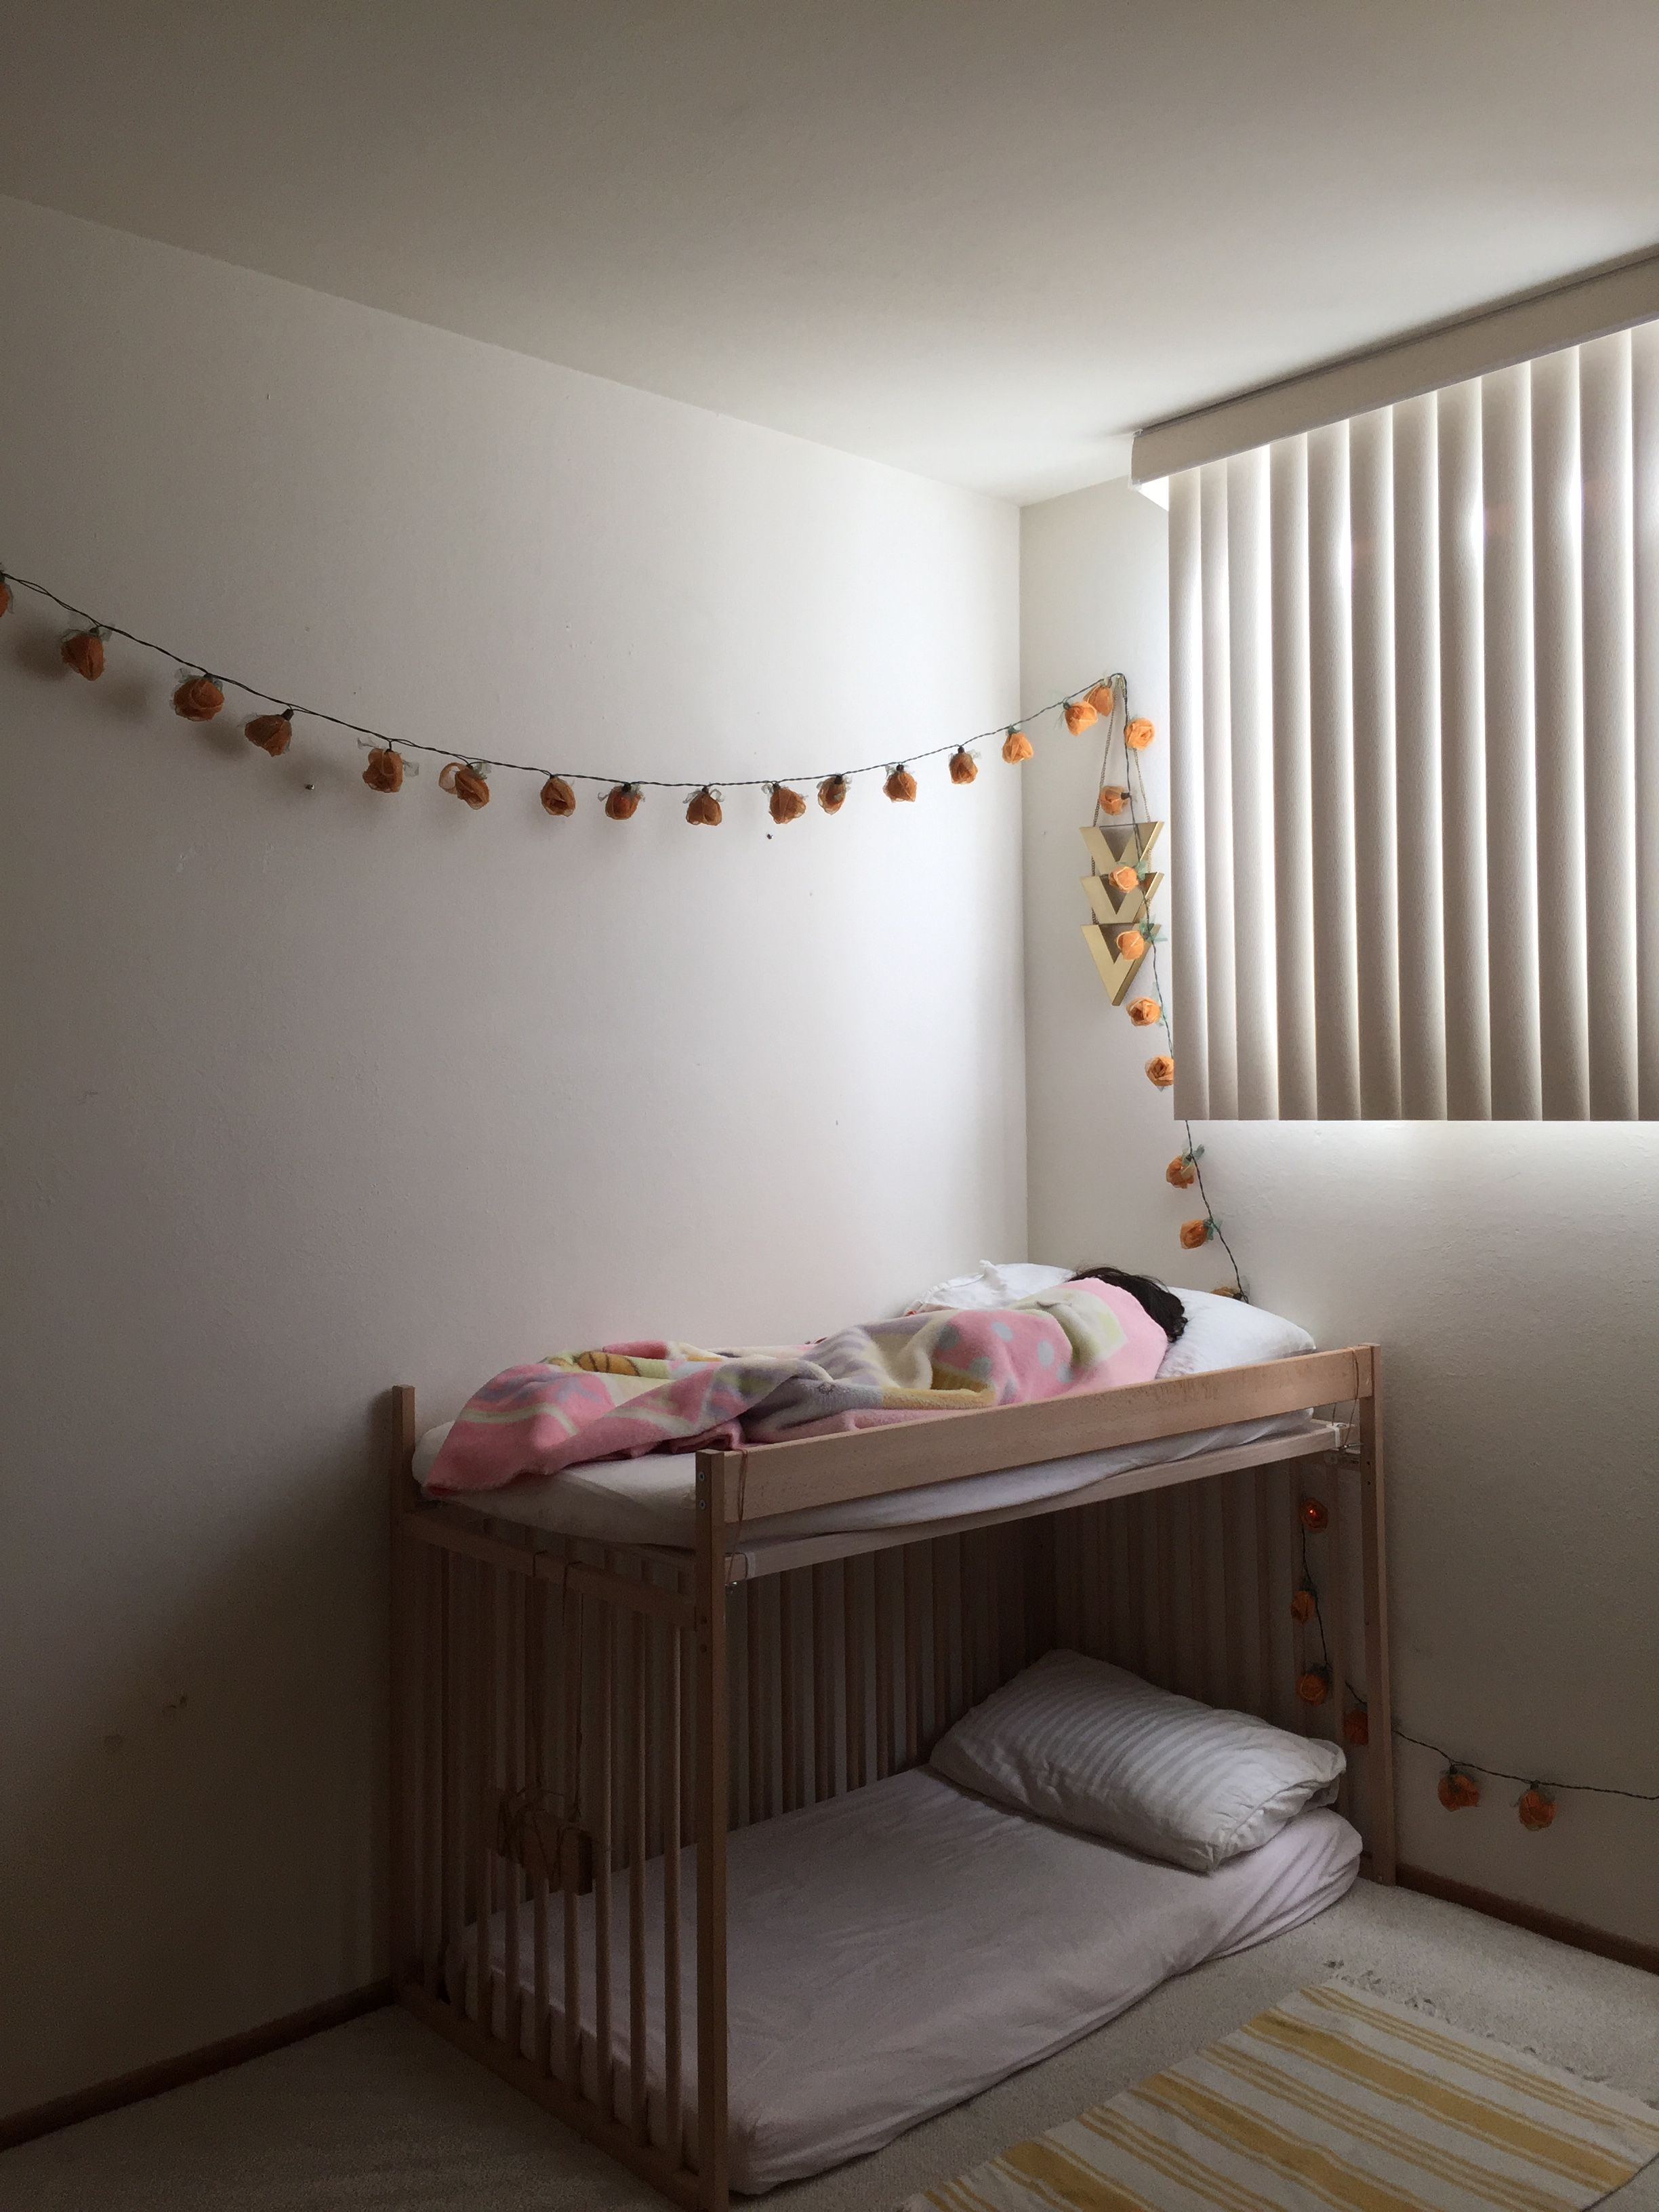 Toddler Bunks Bunk Bed Ikea Hack Turn Ikea Crib Into A Bunk Bed Toddler